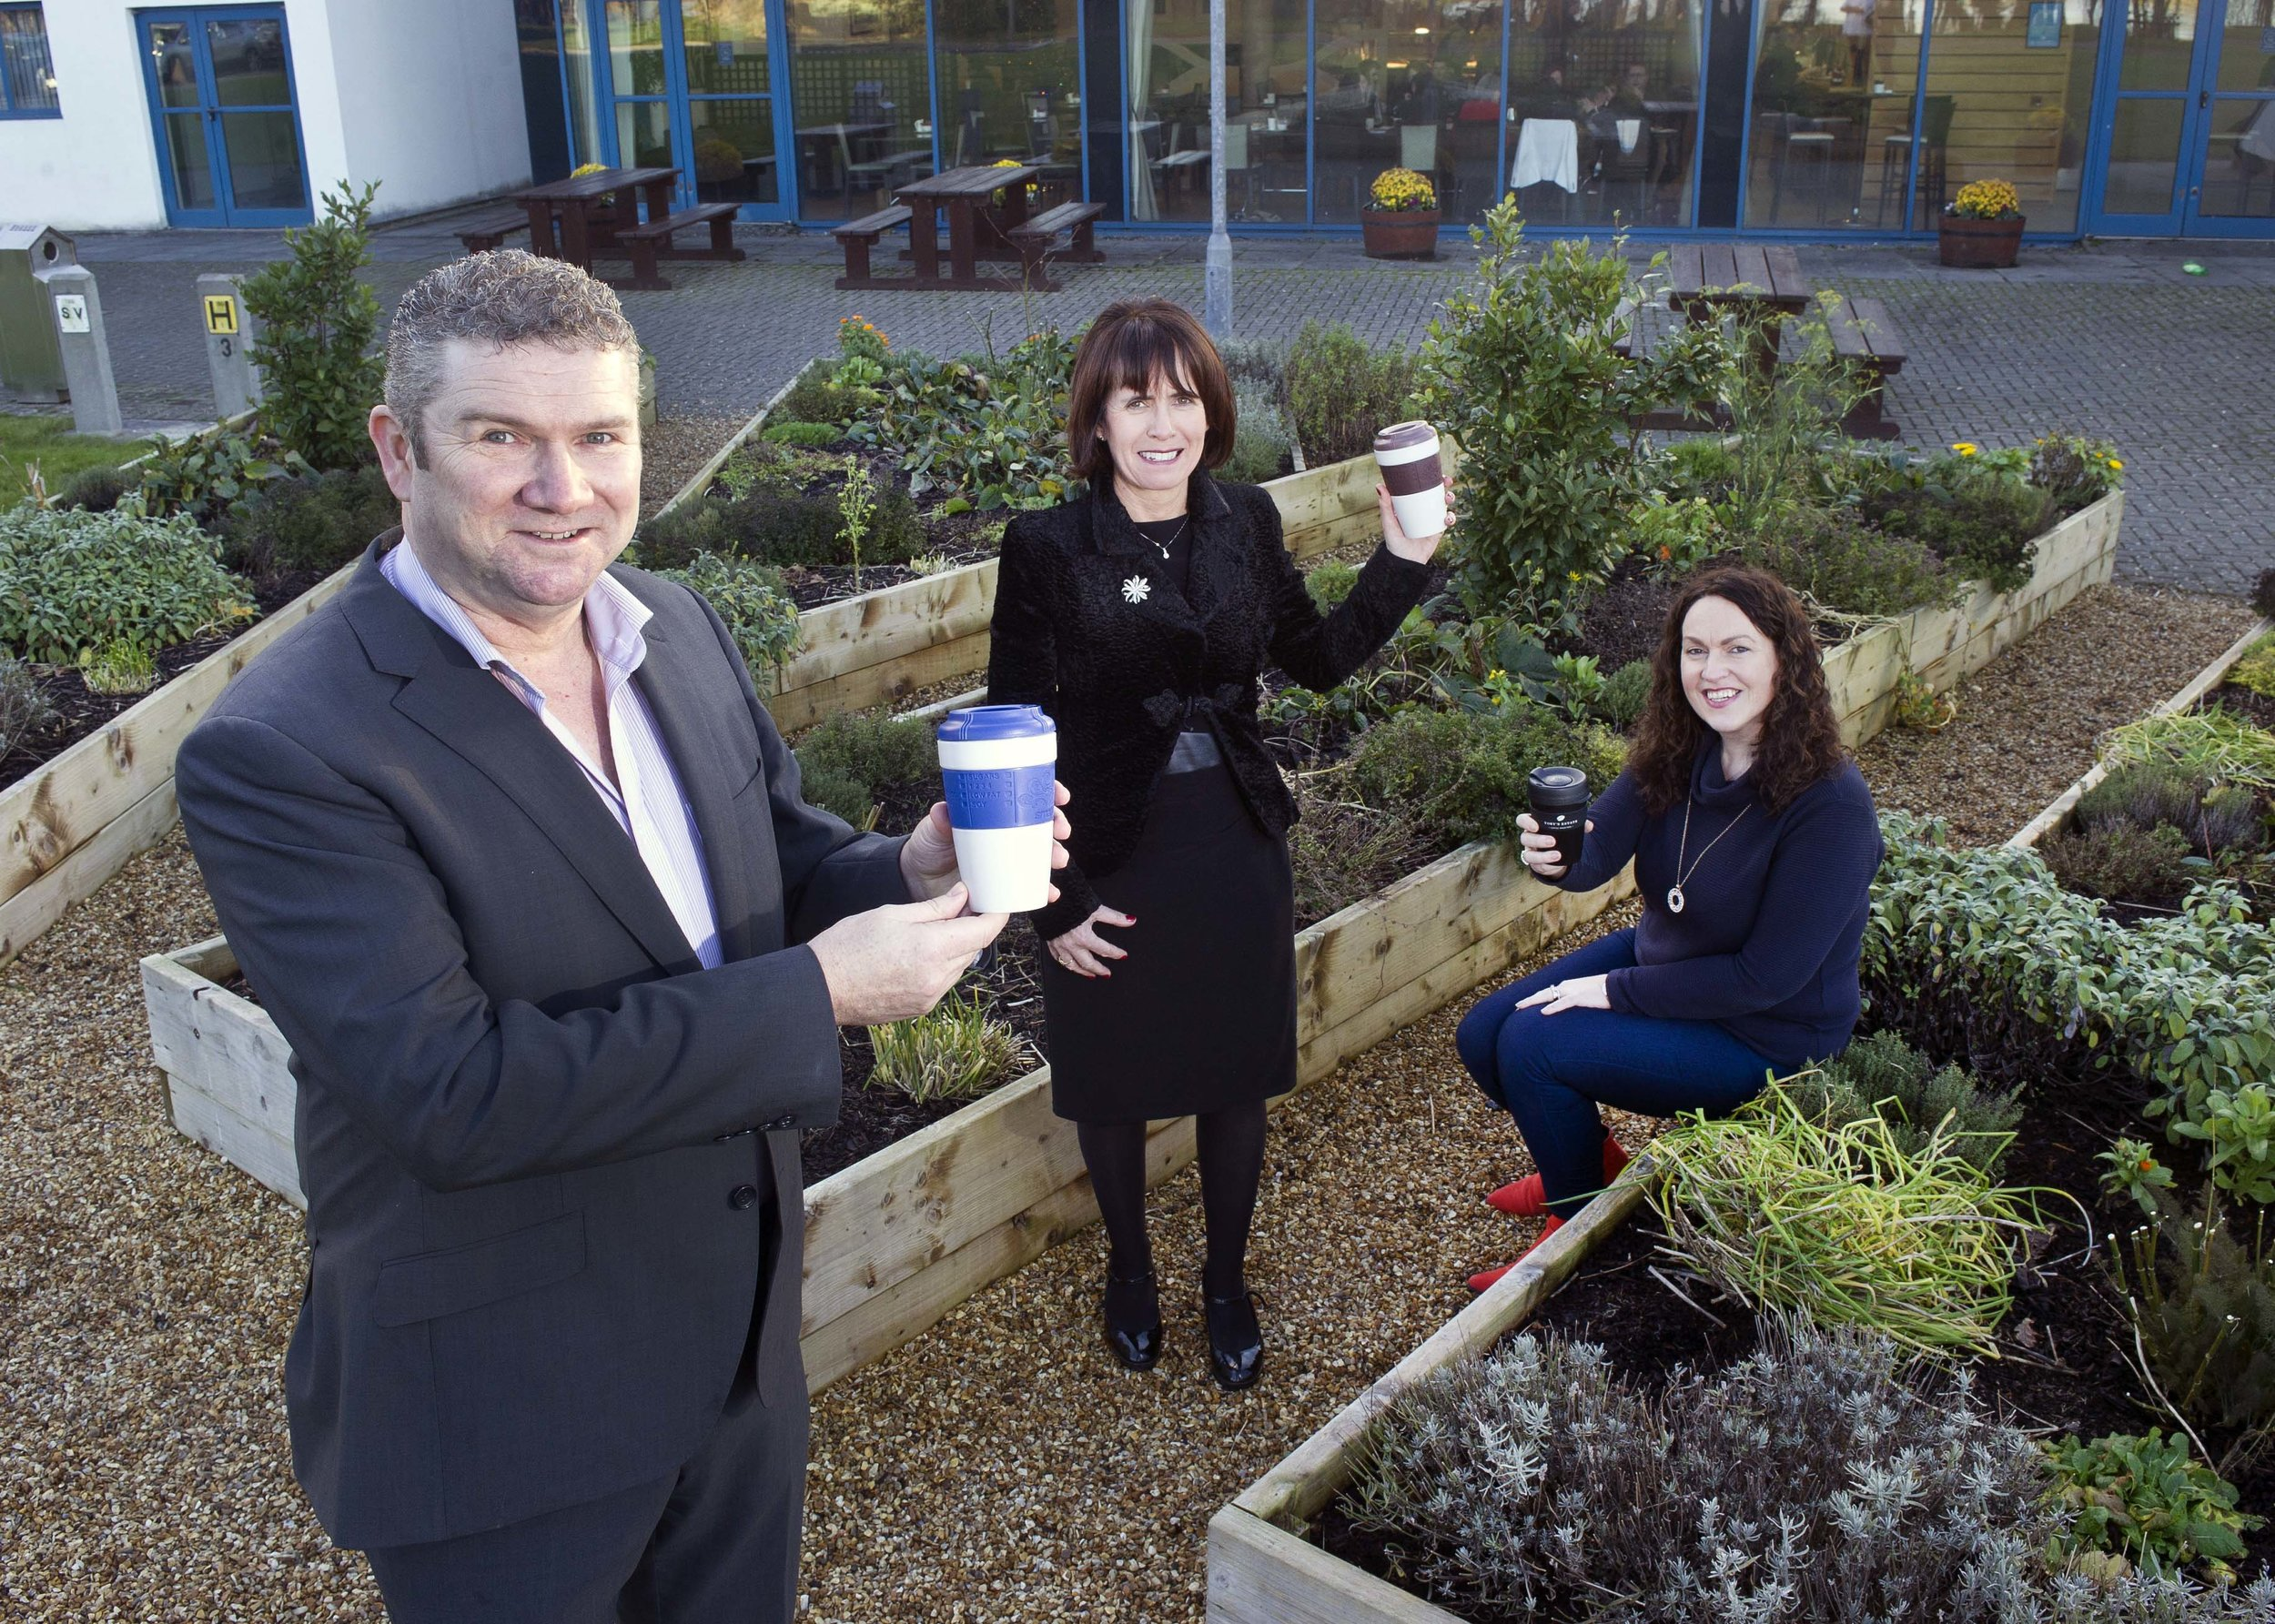 Over the last twelve months, the multi award-winning contract and event caterers have served a mammoth 25,000 hot beverages in reusable cups at NUI Galway